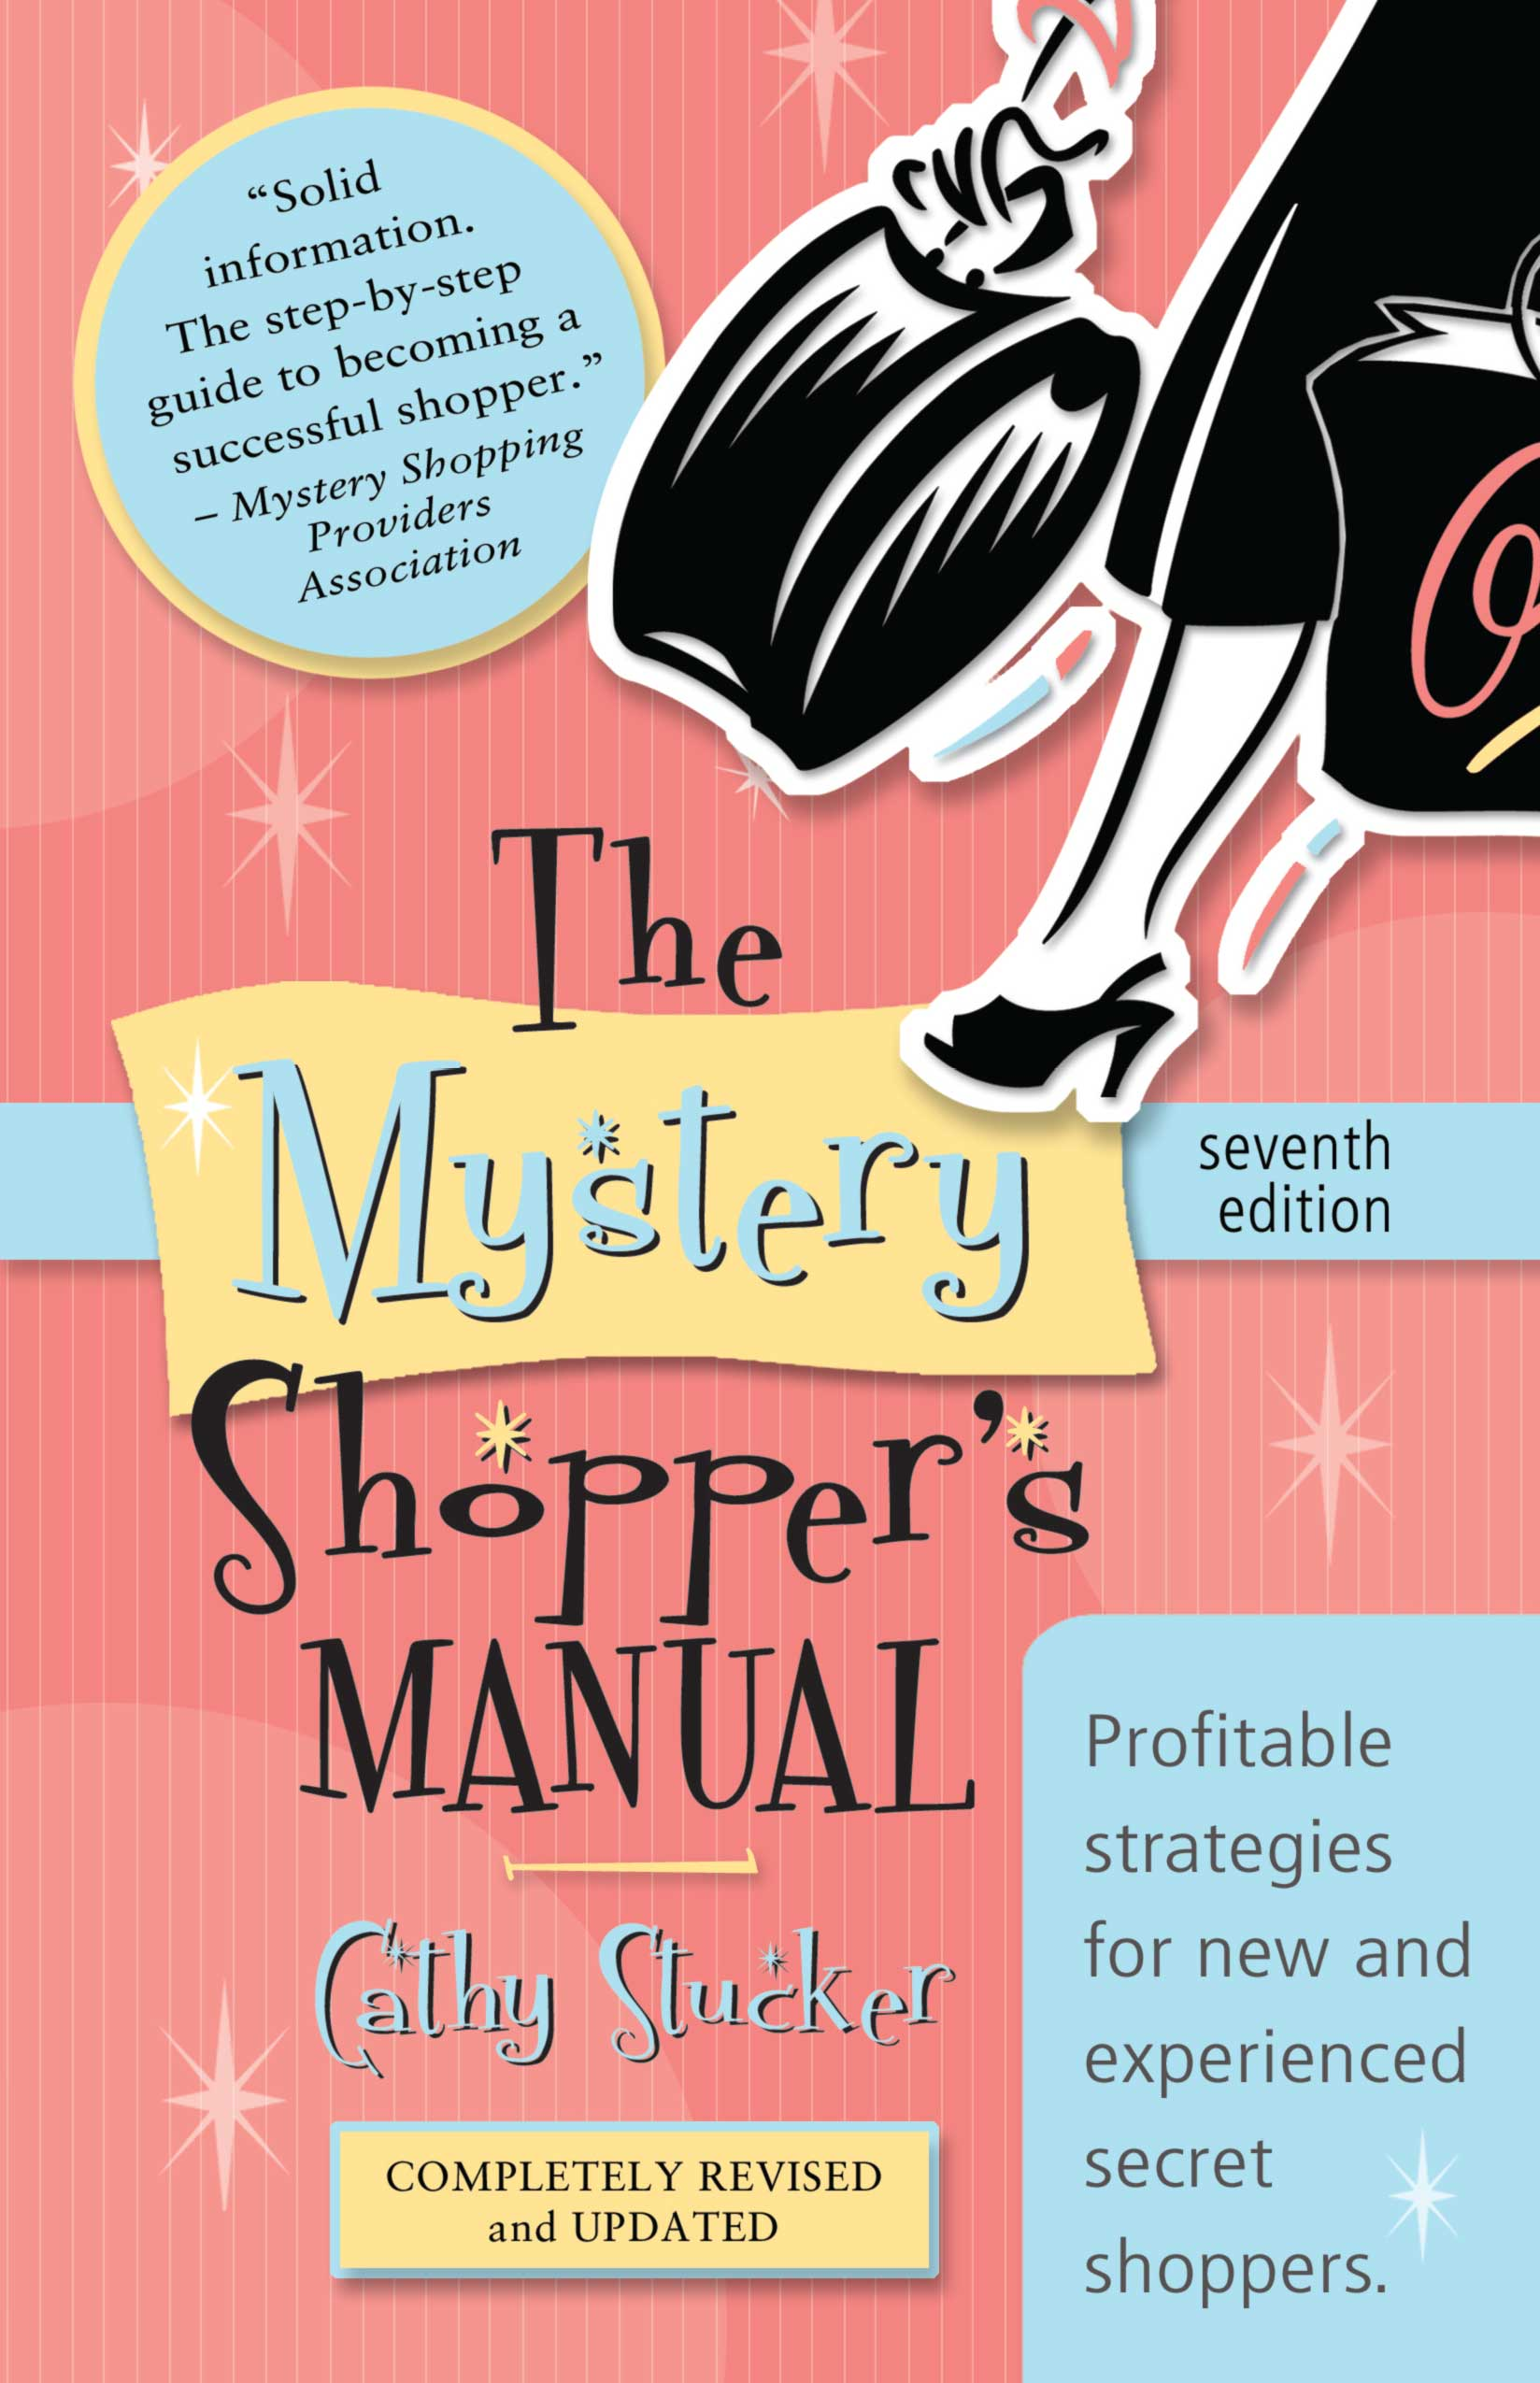 Mystery Shopper's Manual by Cathy Stucker